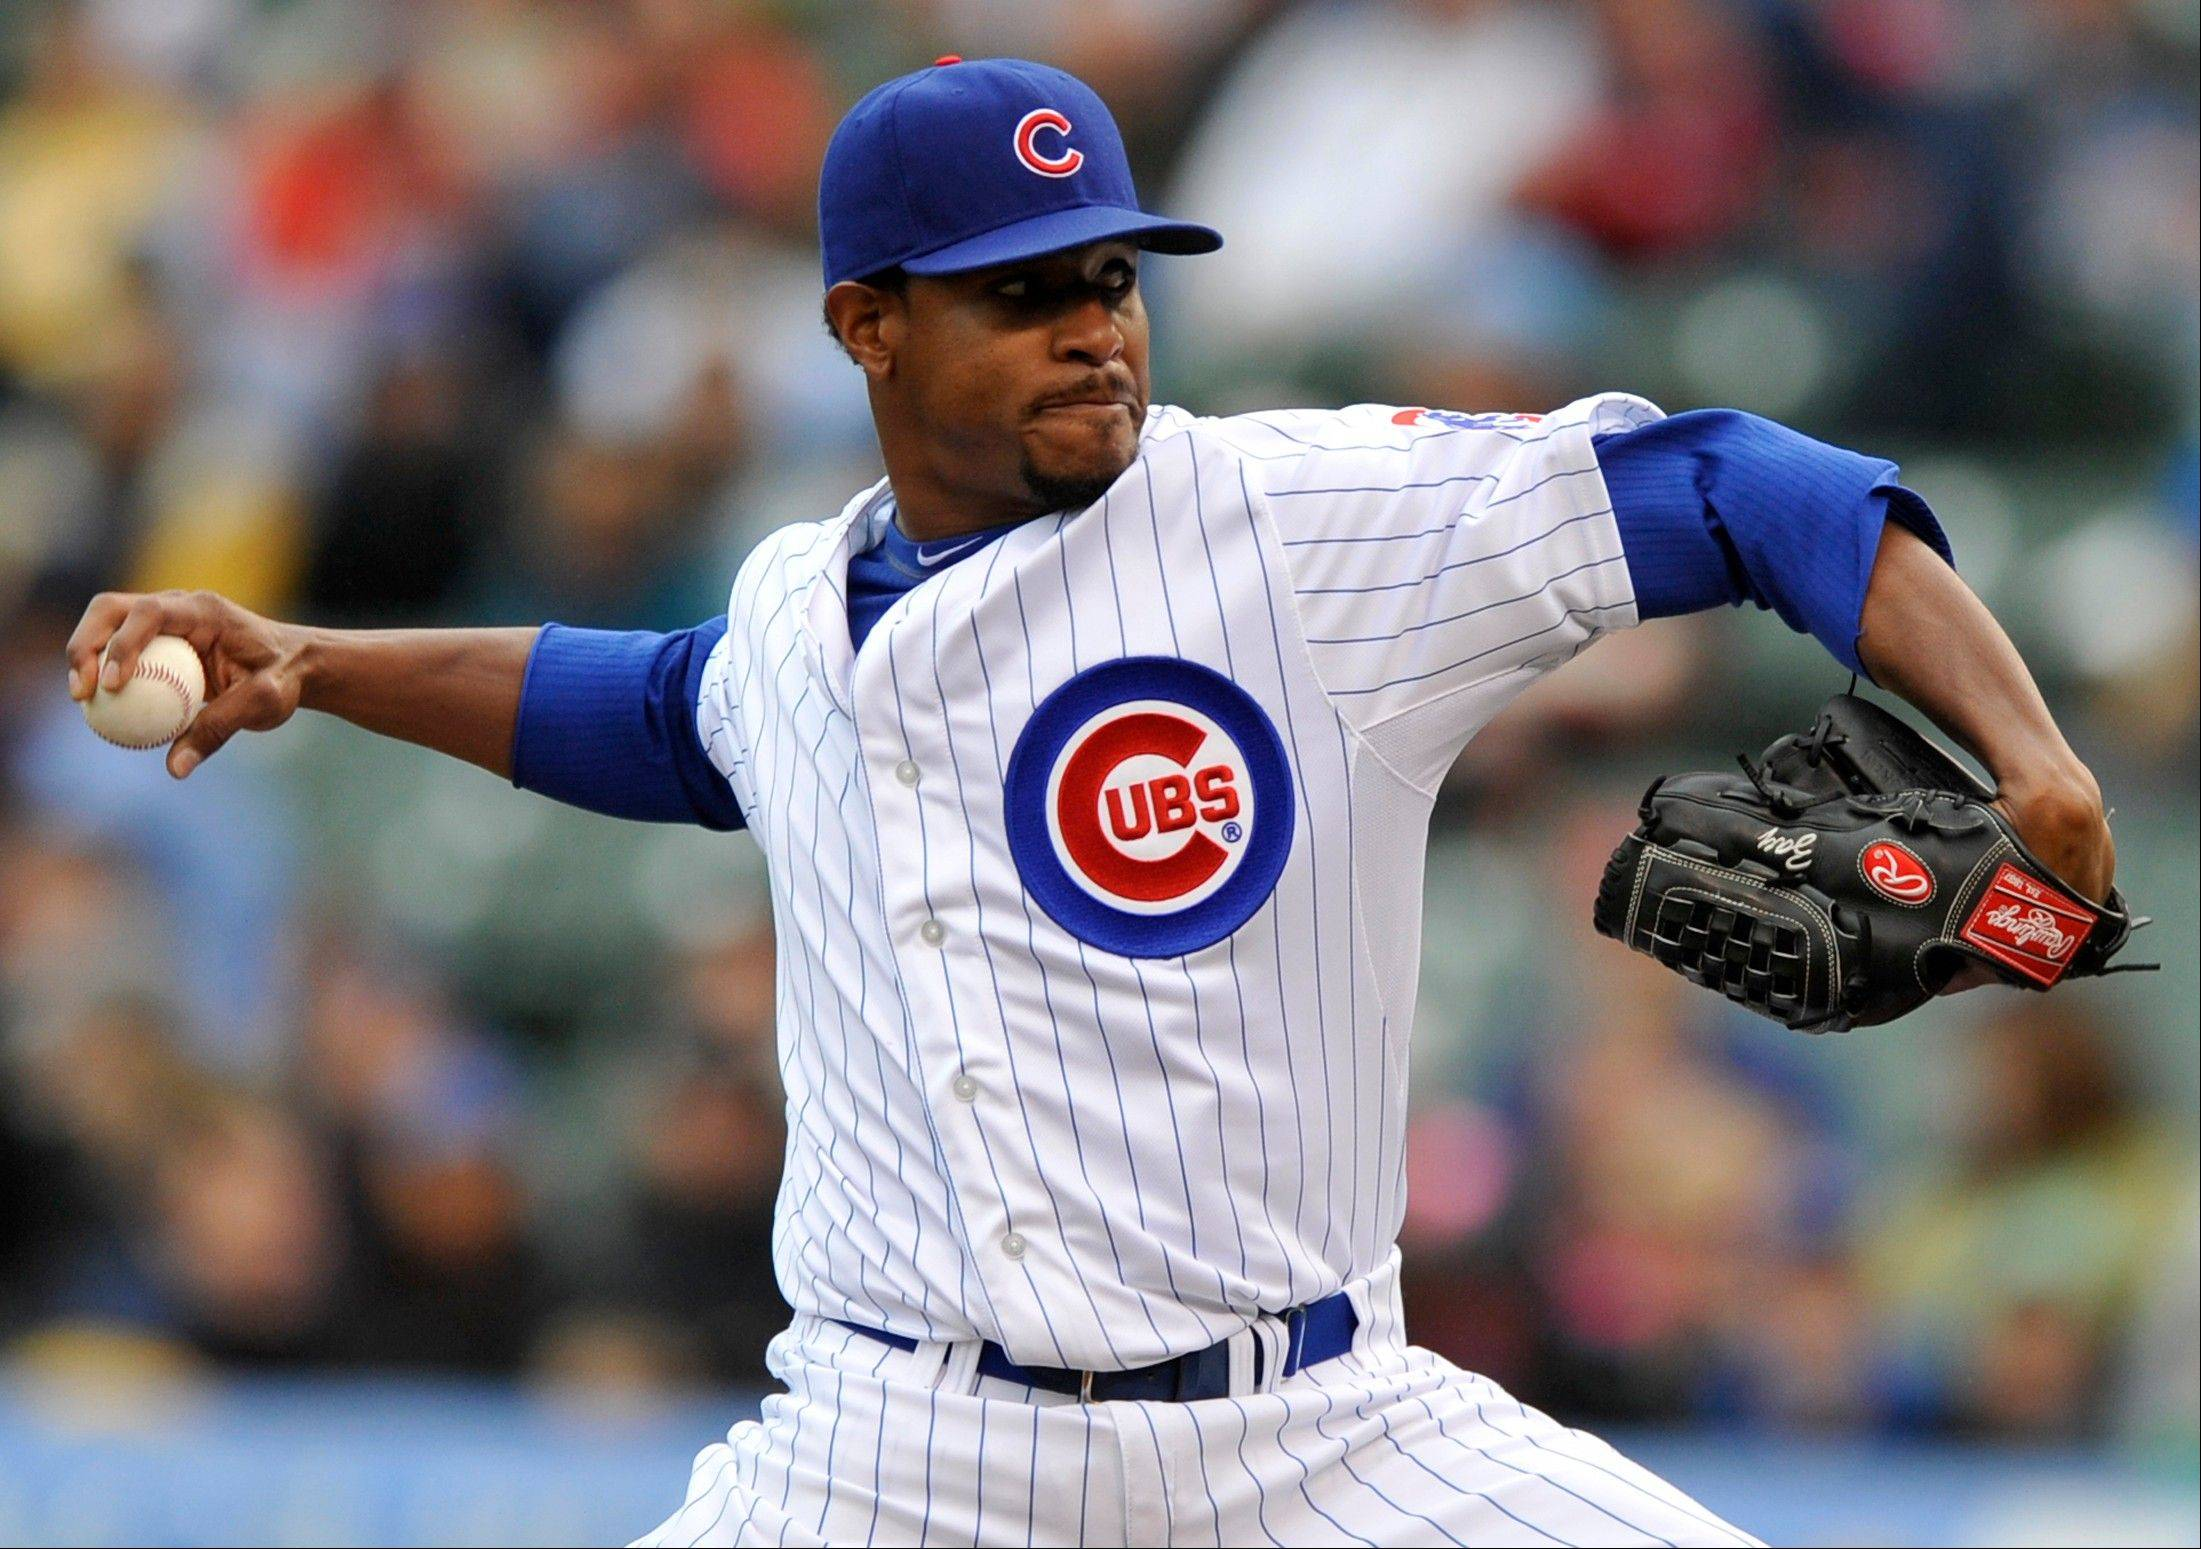 Cubs starter Edwin Jackson, who signed a four-year, %52 million contract during the off-season, is 1-8 with a 6.29 ERA this campaign.